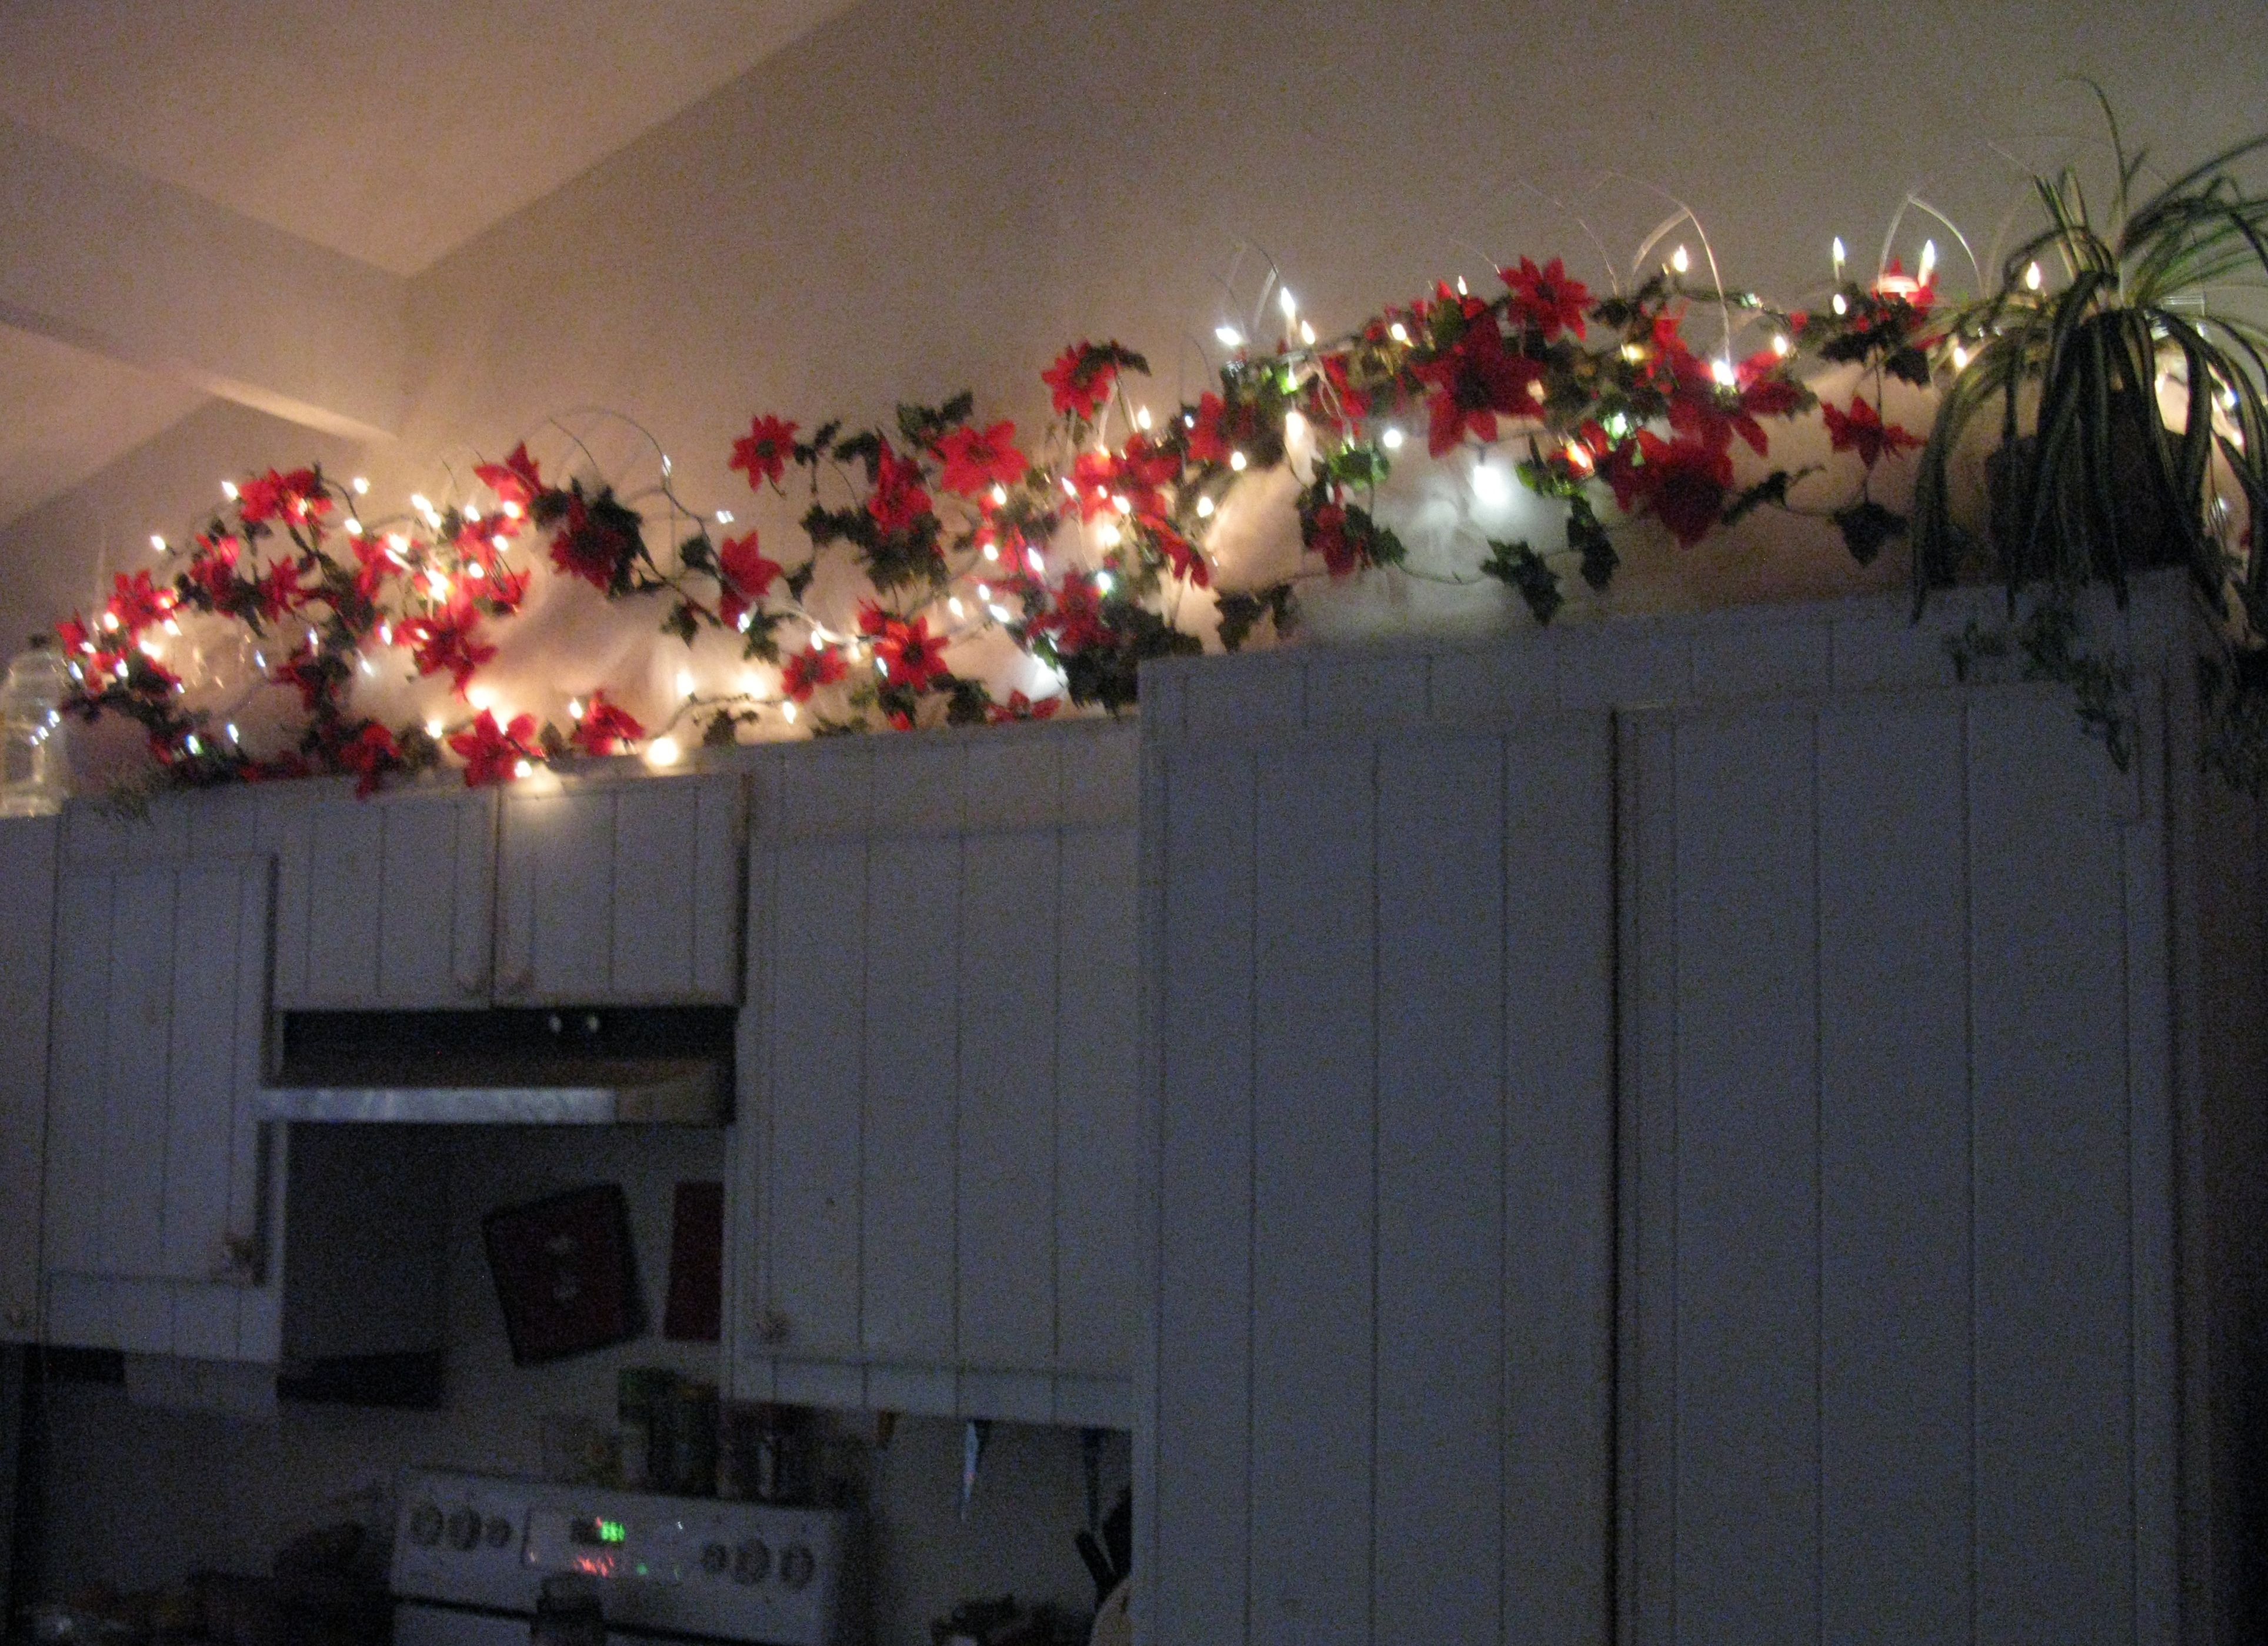 Above the cabinets at Christmas | Christmas lights inside ...